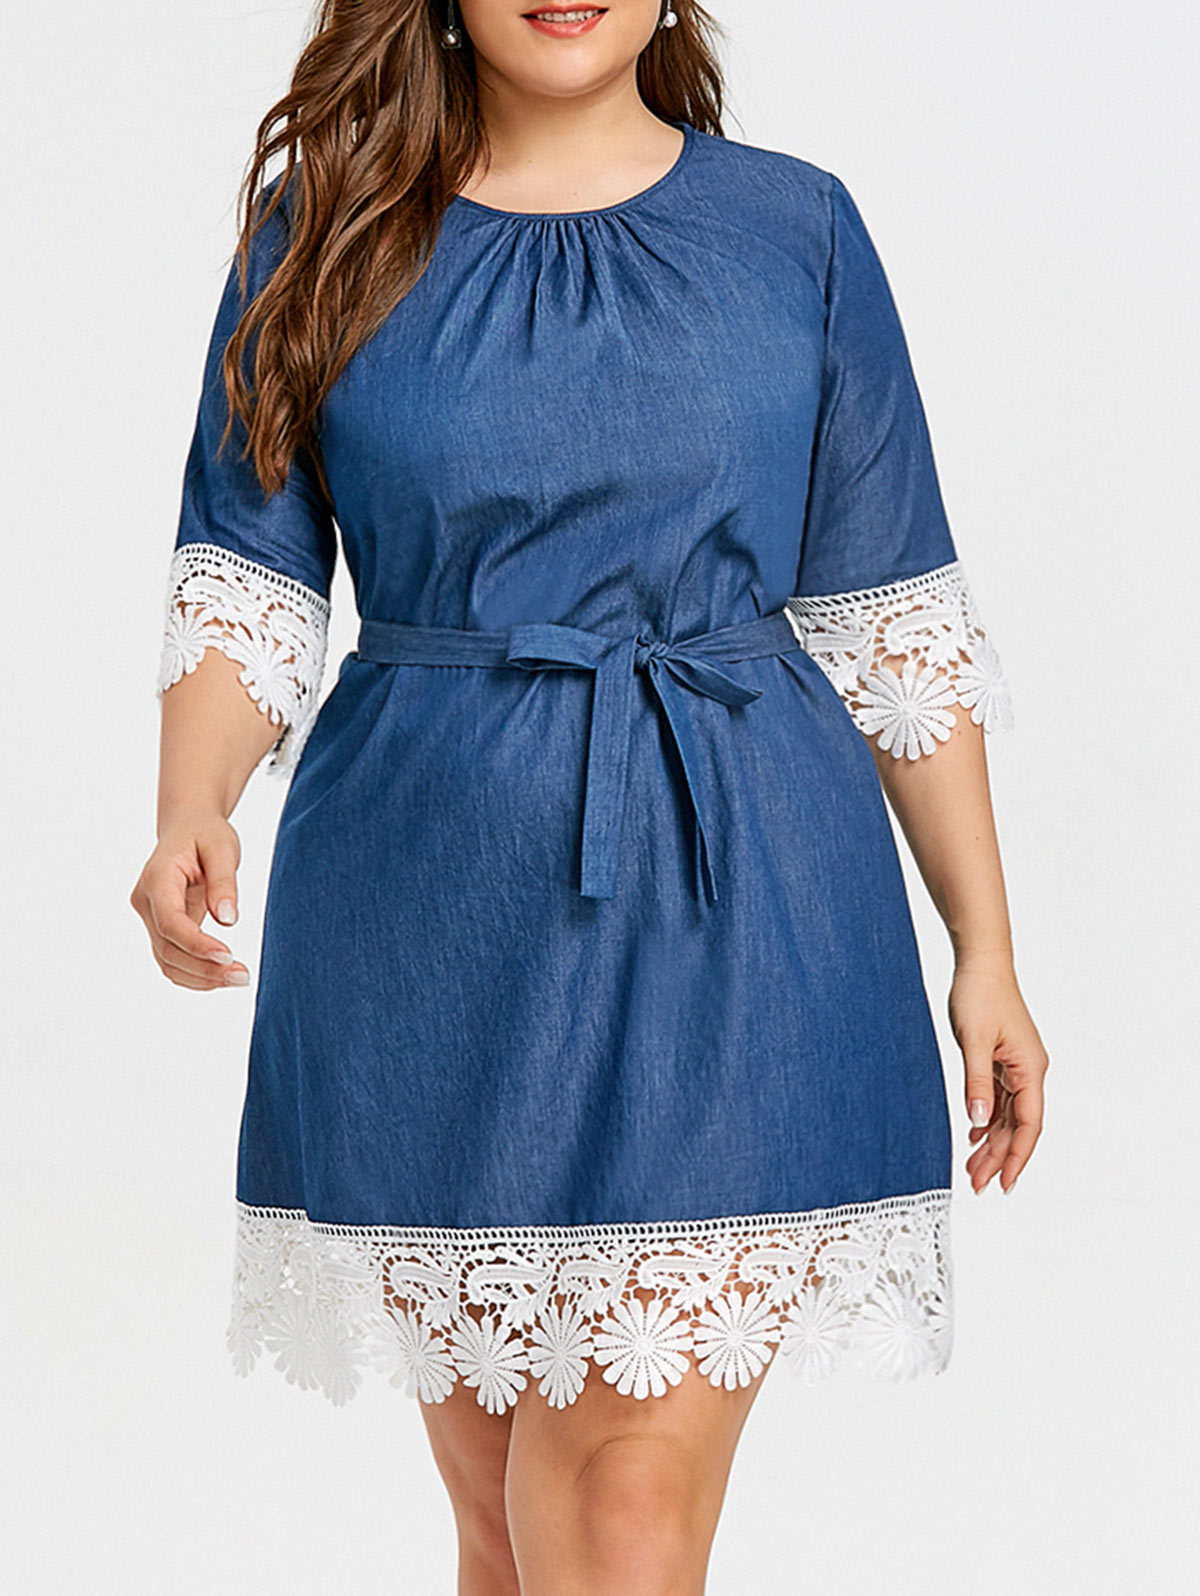 0e589003a8 Soft Denim Dress Big Size 2018 Autumn Women Half Sleeve Lace Hem ...